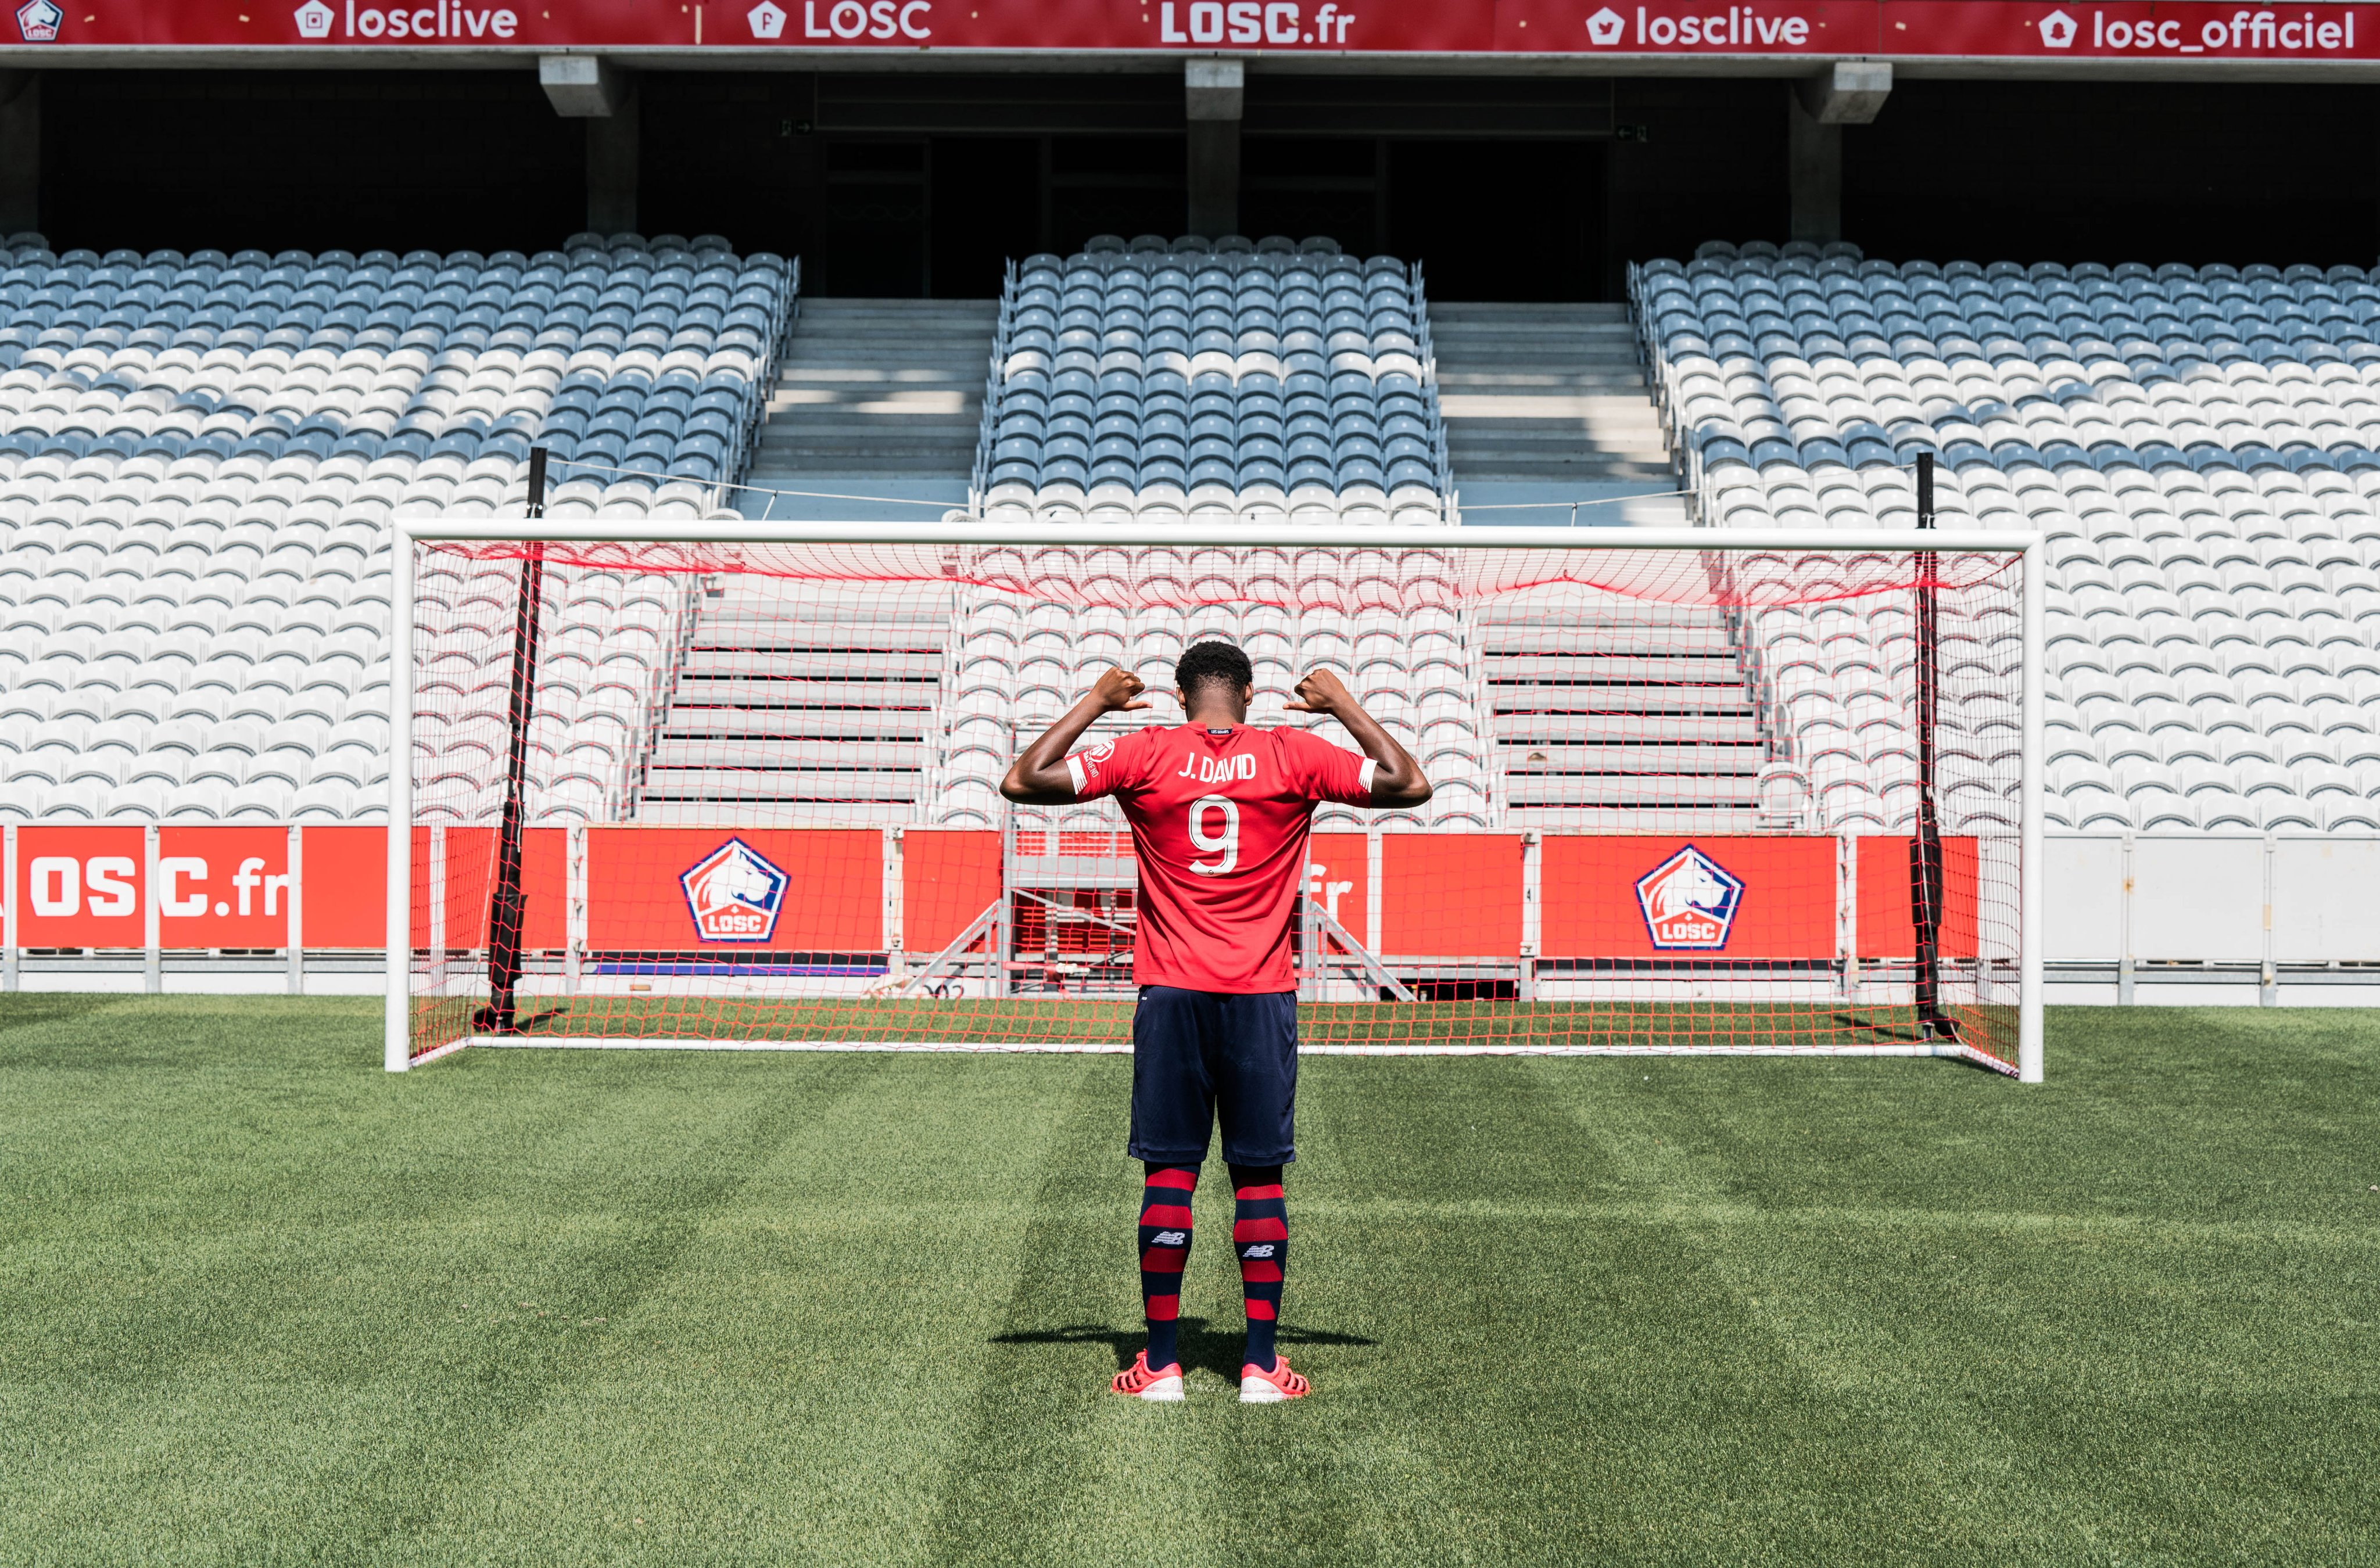 Lille usually sells players for fortunes, now they bought a striker for one